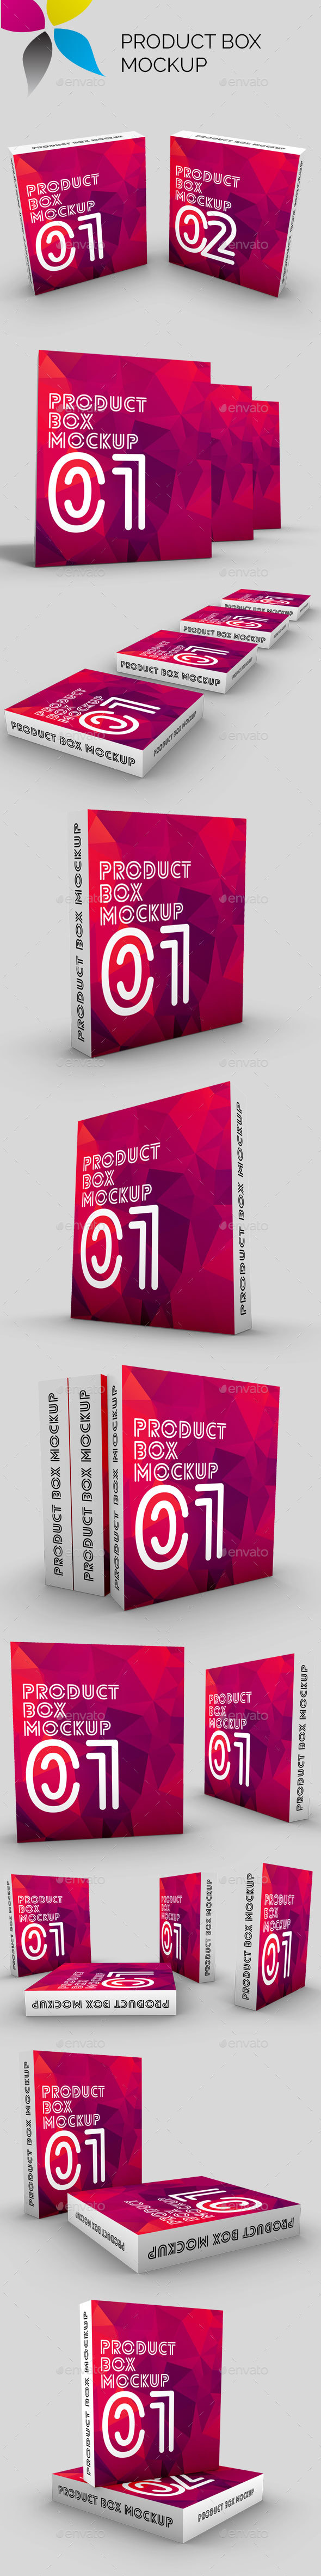 Product Box Mockup - Miscellaneous Packaging